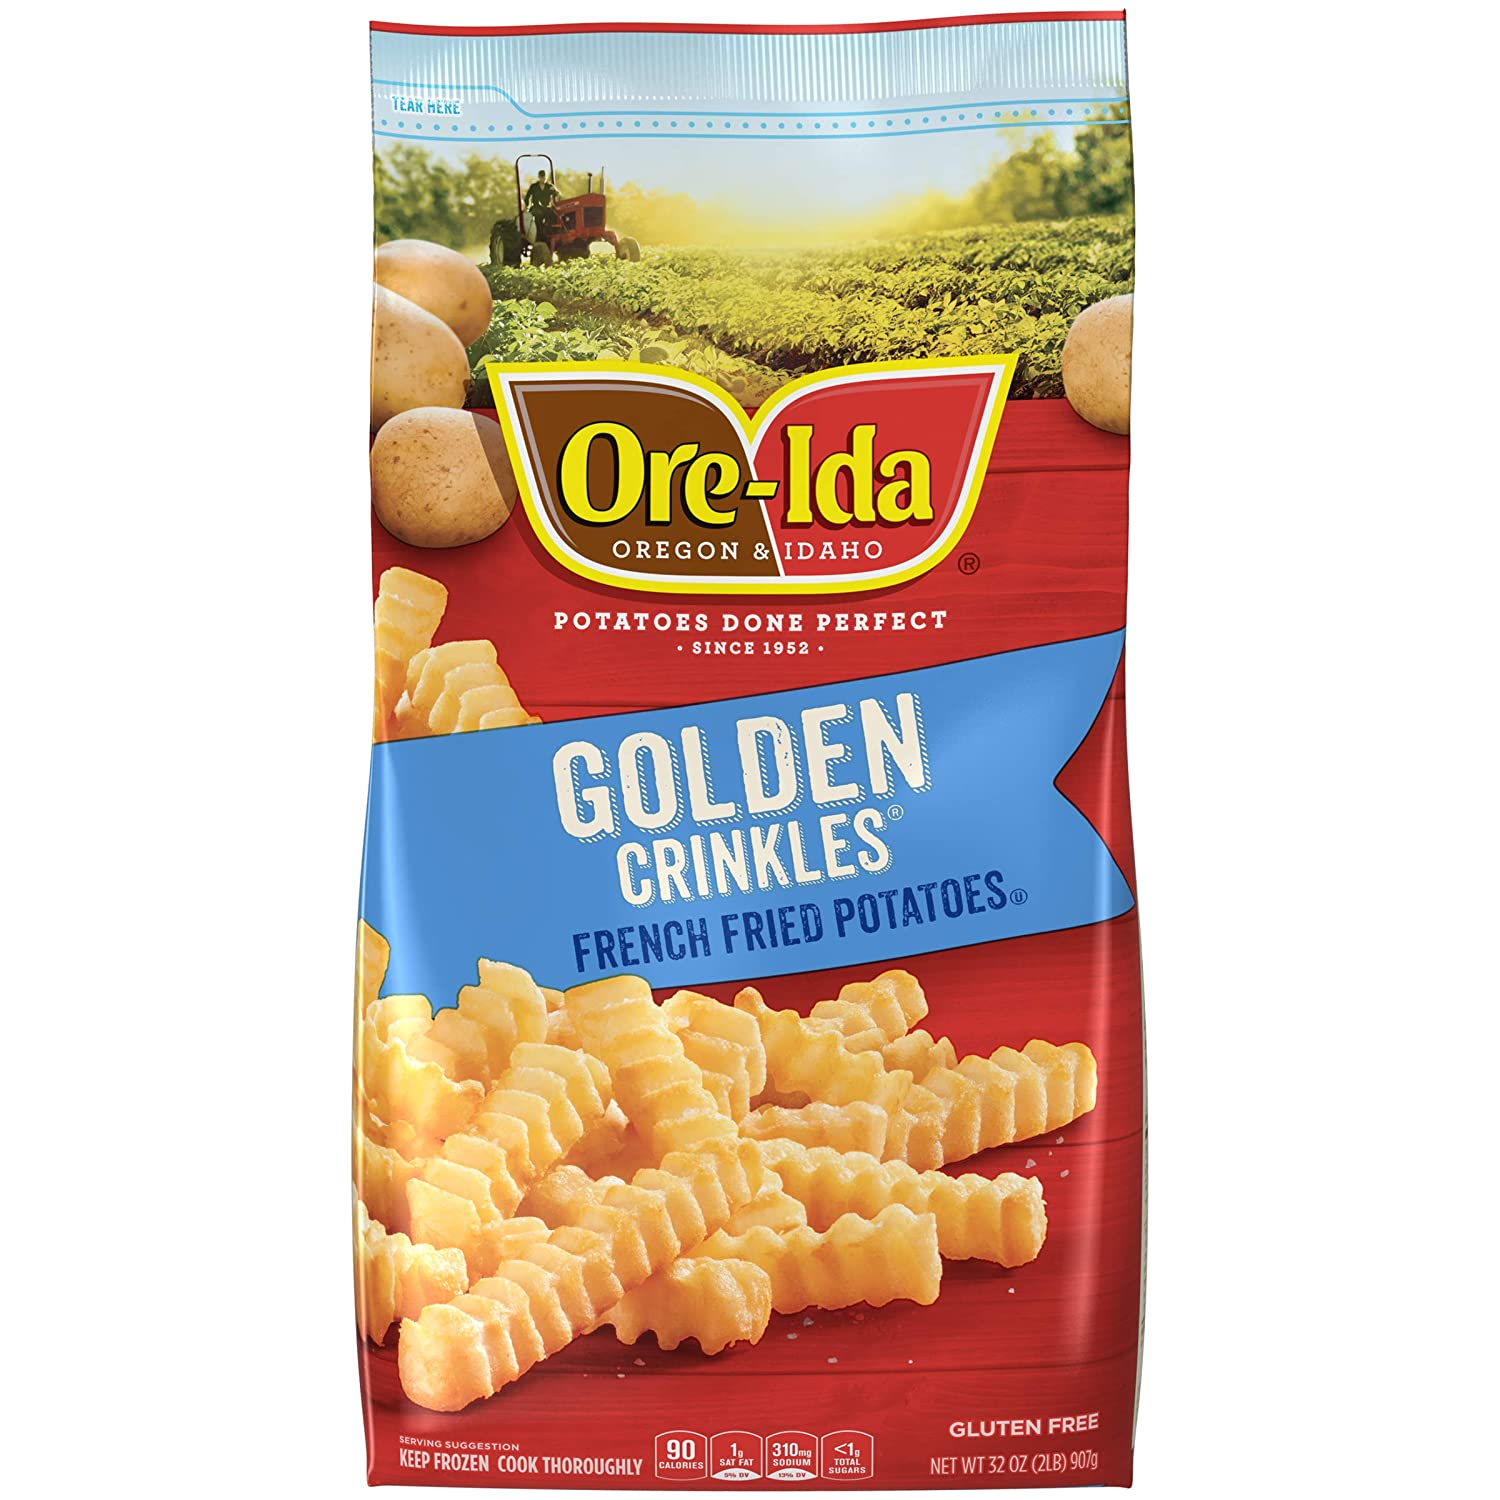 Ore-Ida Golden Crinkles Frozen French Fries (32 oz Bag)